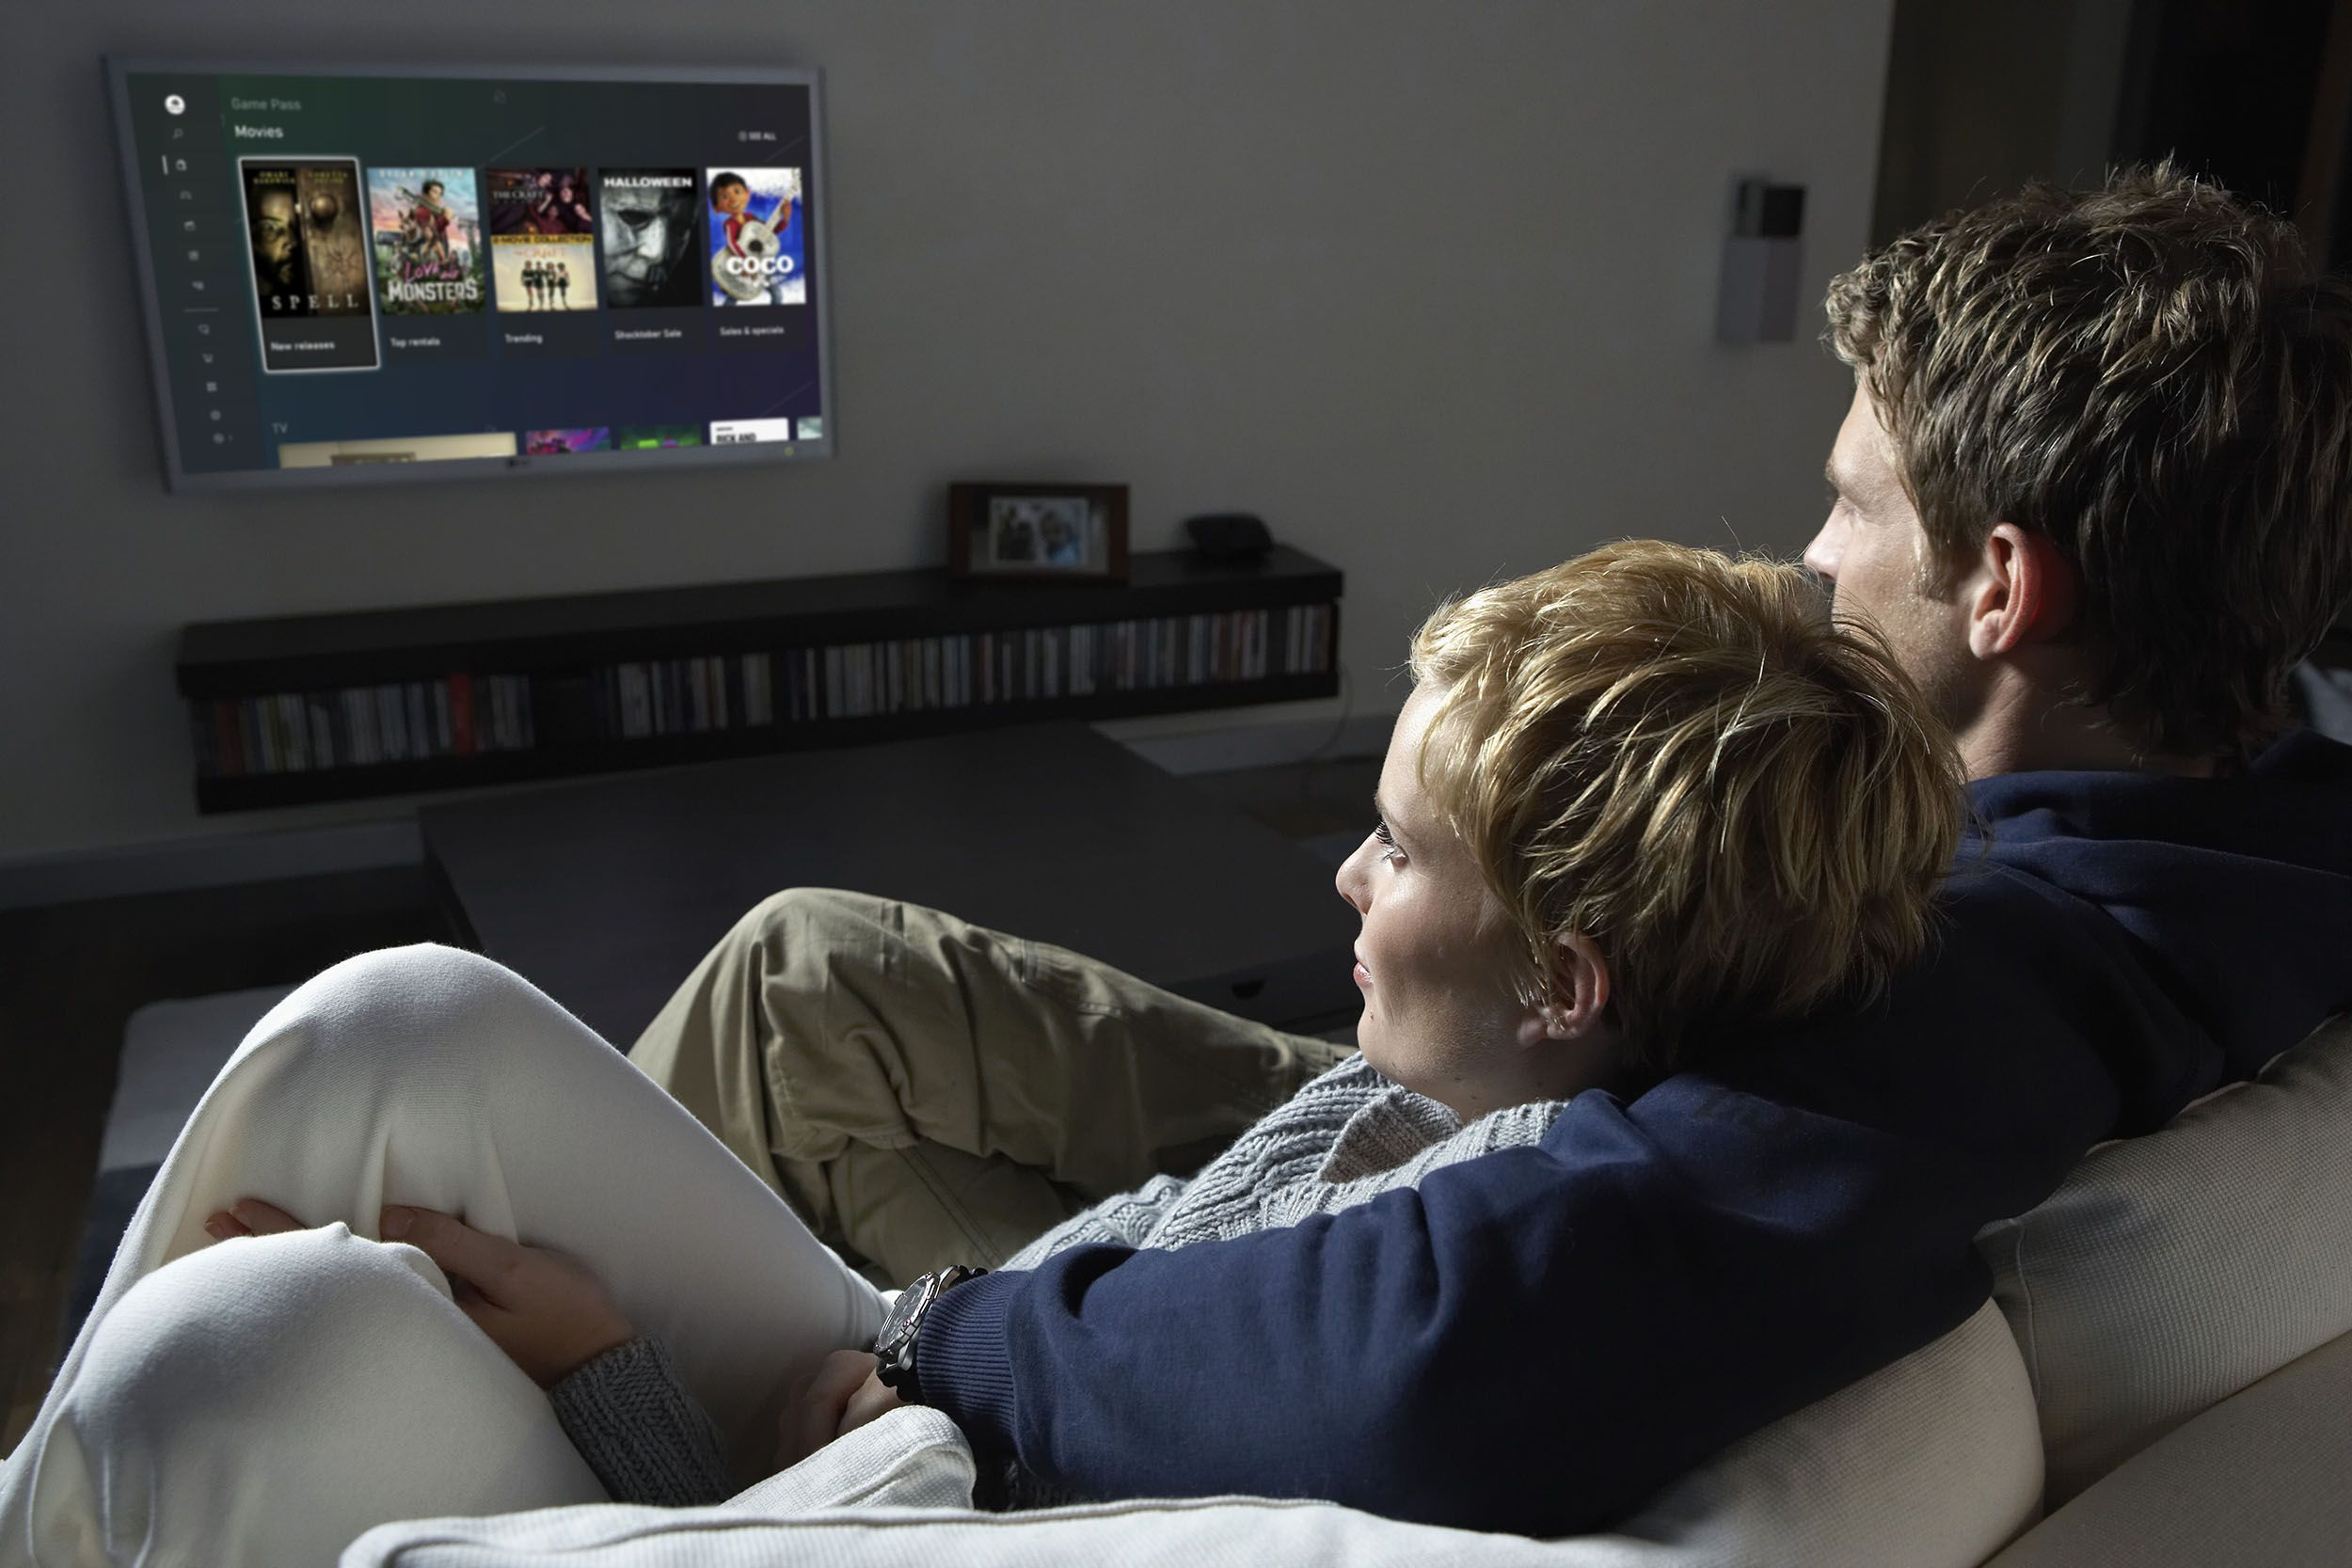 How to Watch Movies on Xbox Series X or S